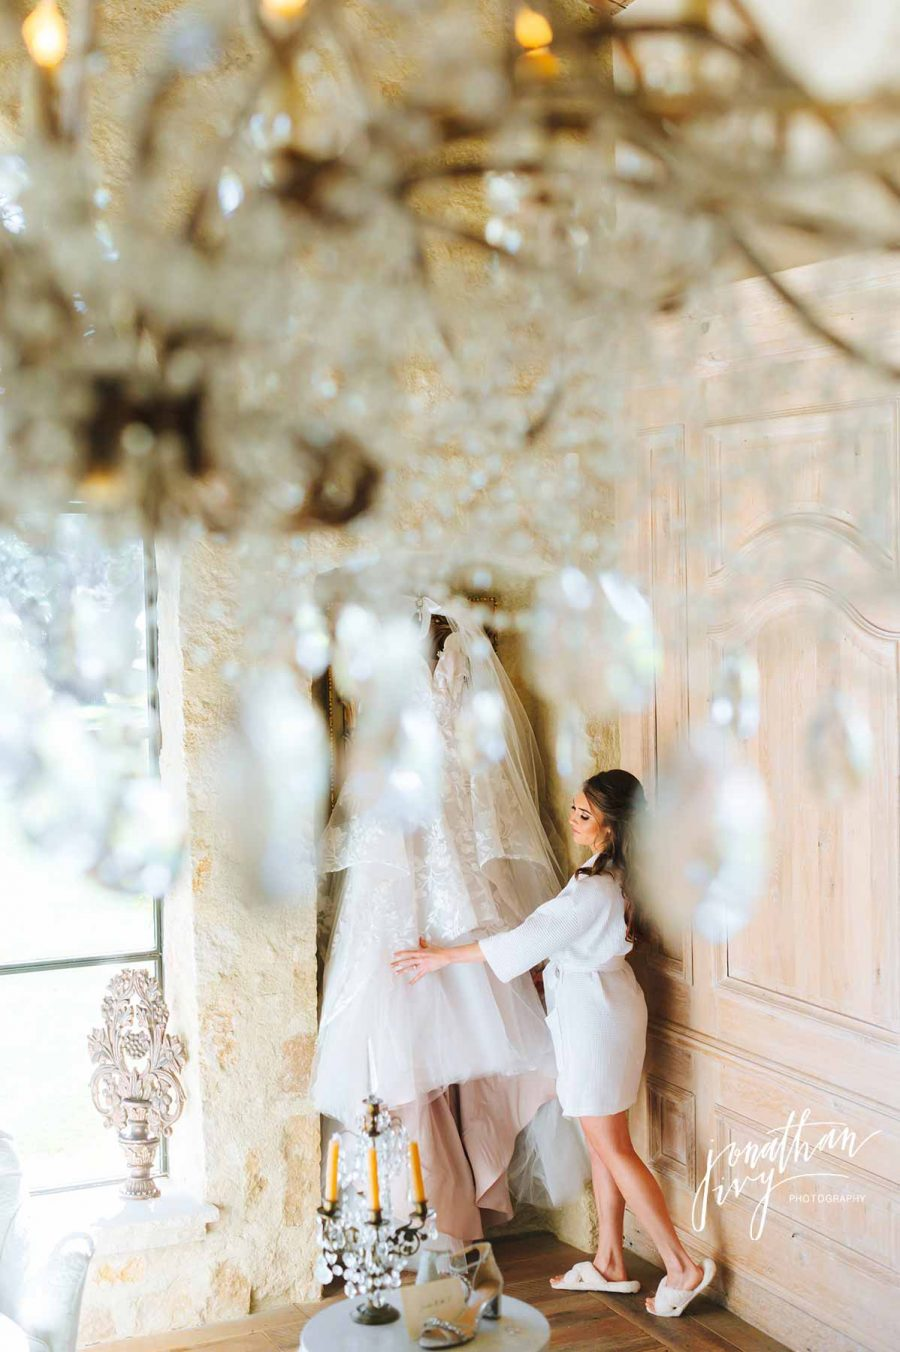 Bride Getting Ready with her Hayley Paige Gown | San Antonio Destination Wedding Photographer